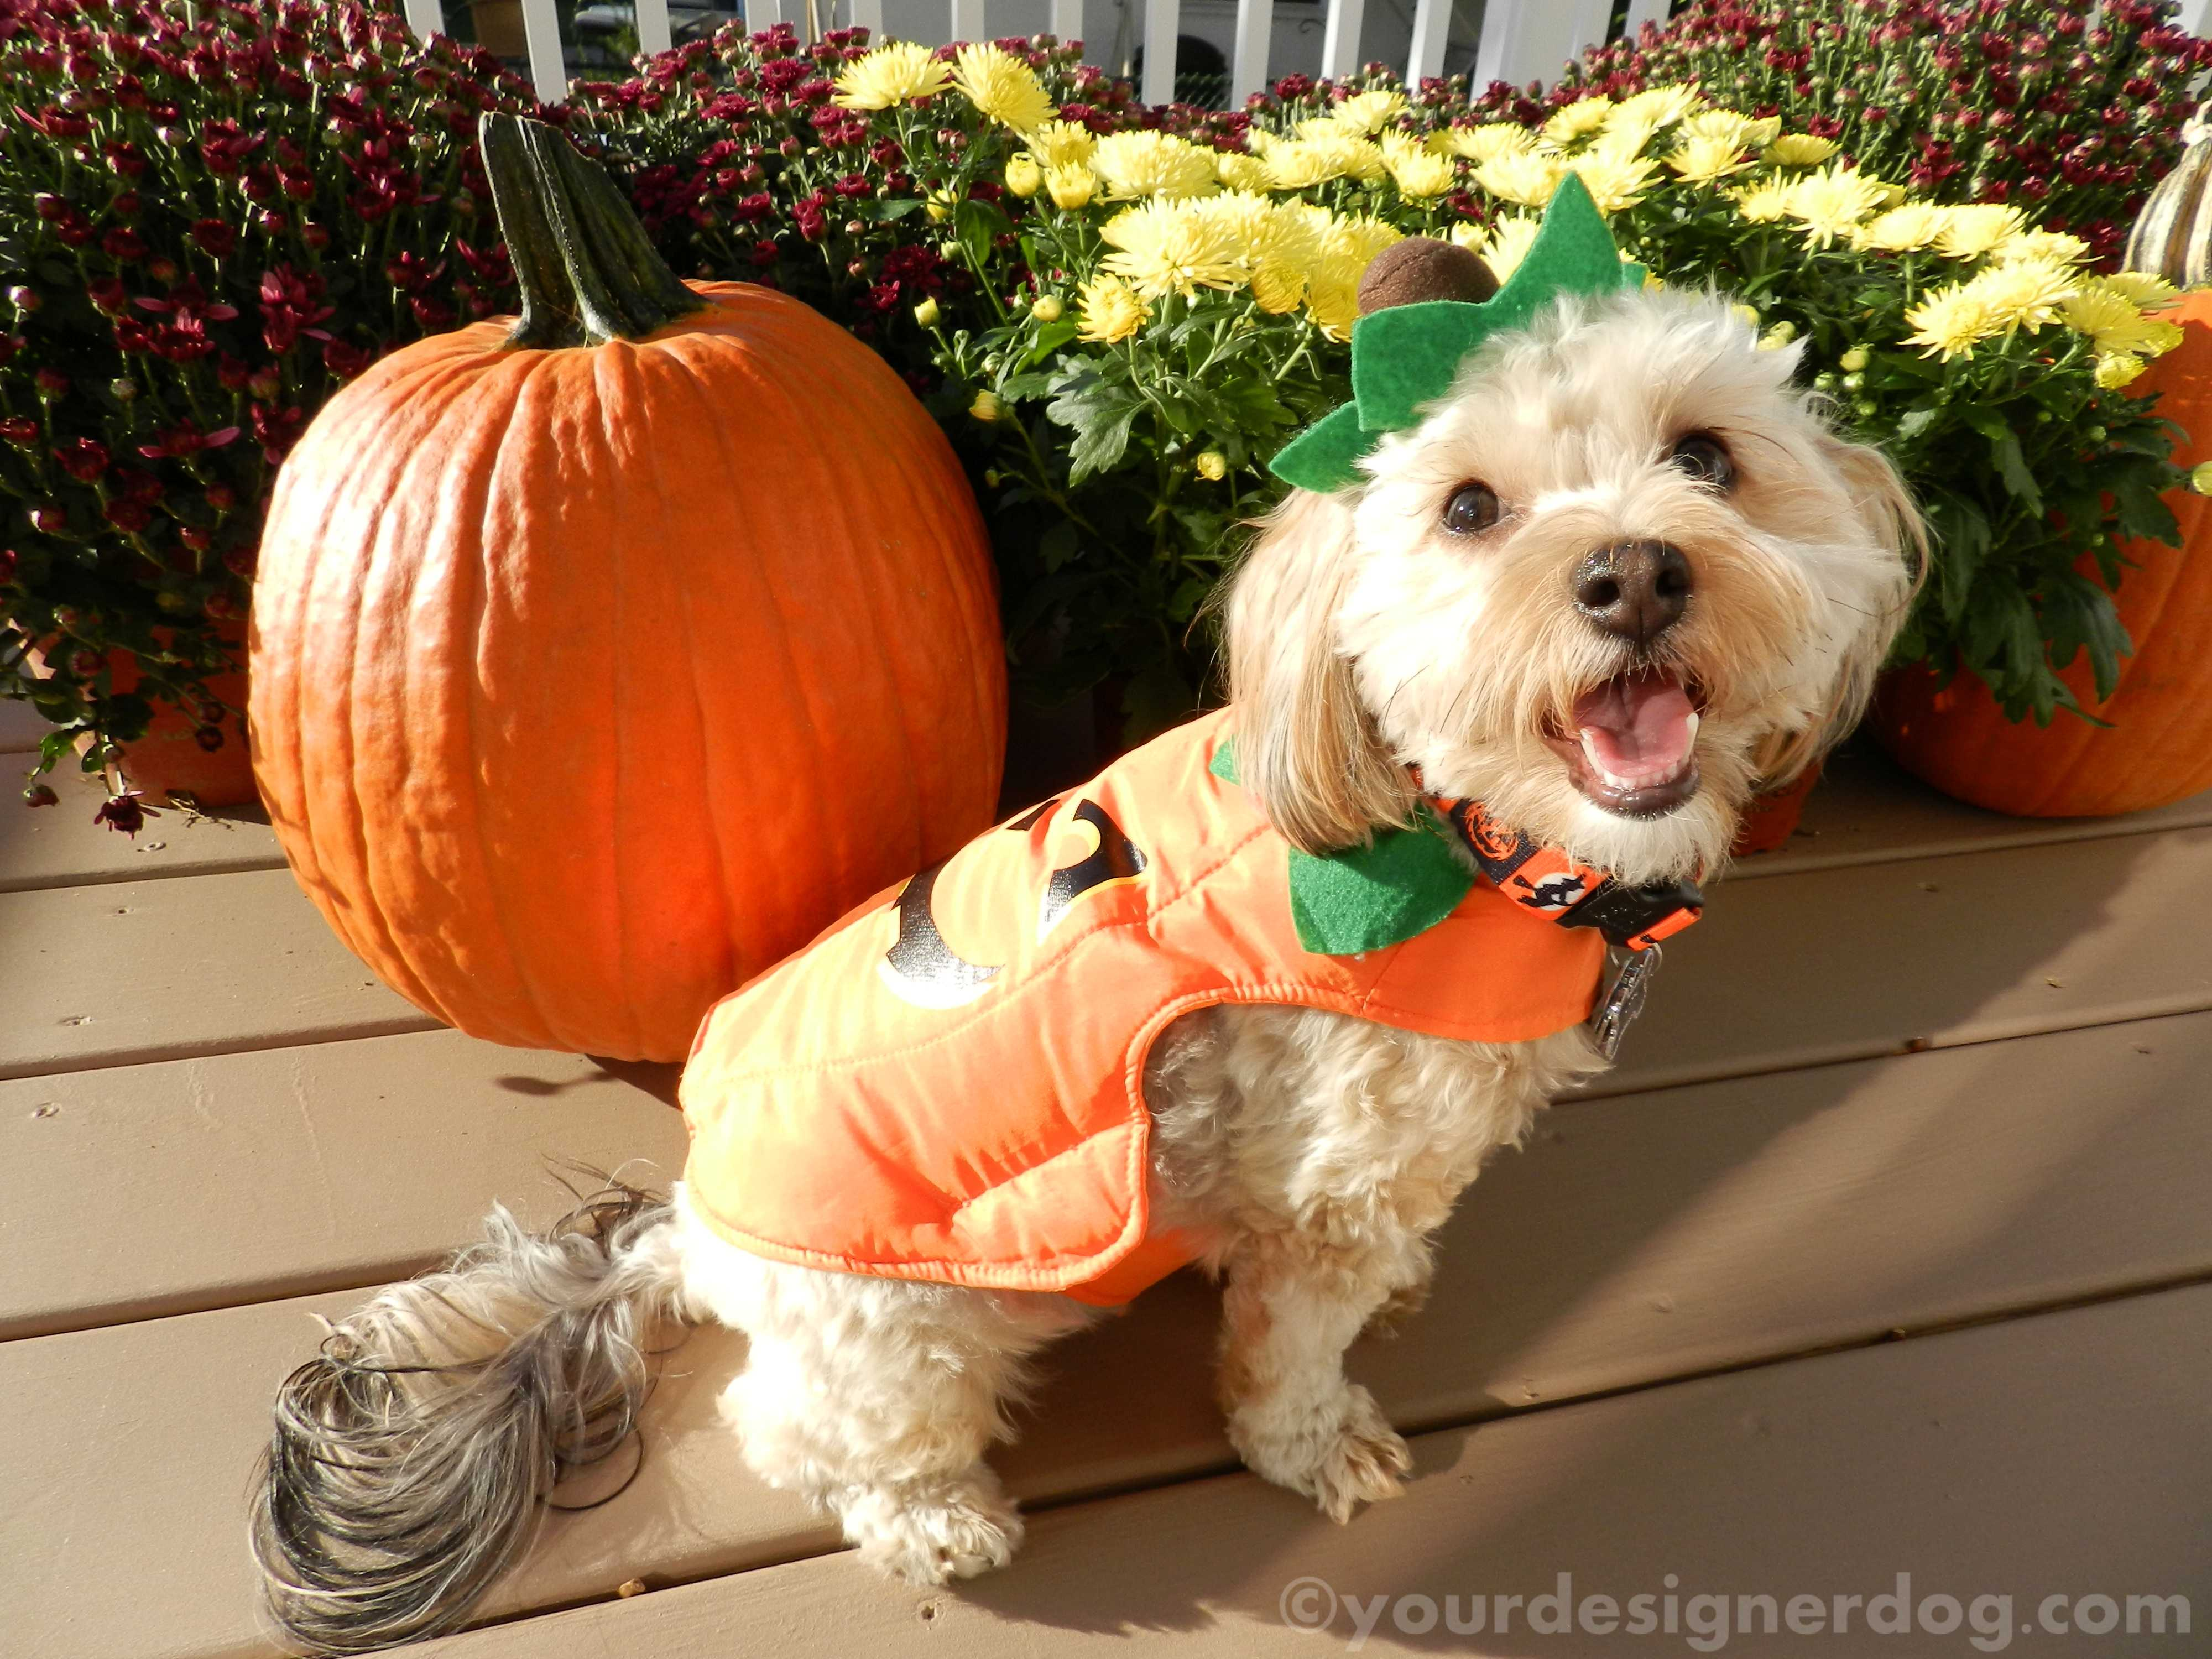 dogs, designer dogs, yorkipoo, yorkie poo, pumpkins, fall, halloween, mums, dogs with flowers, dogs smiling, tongue out